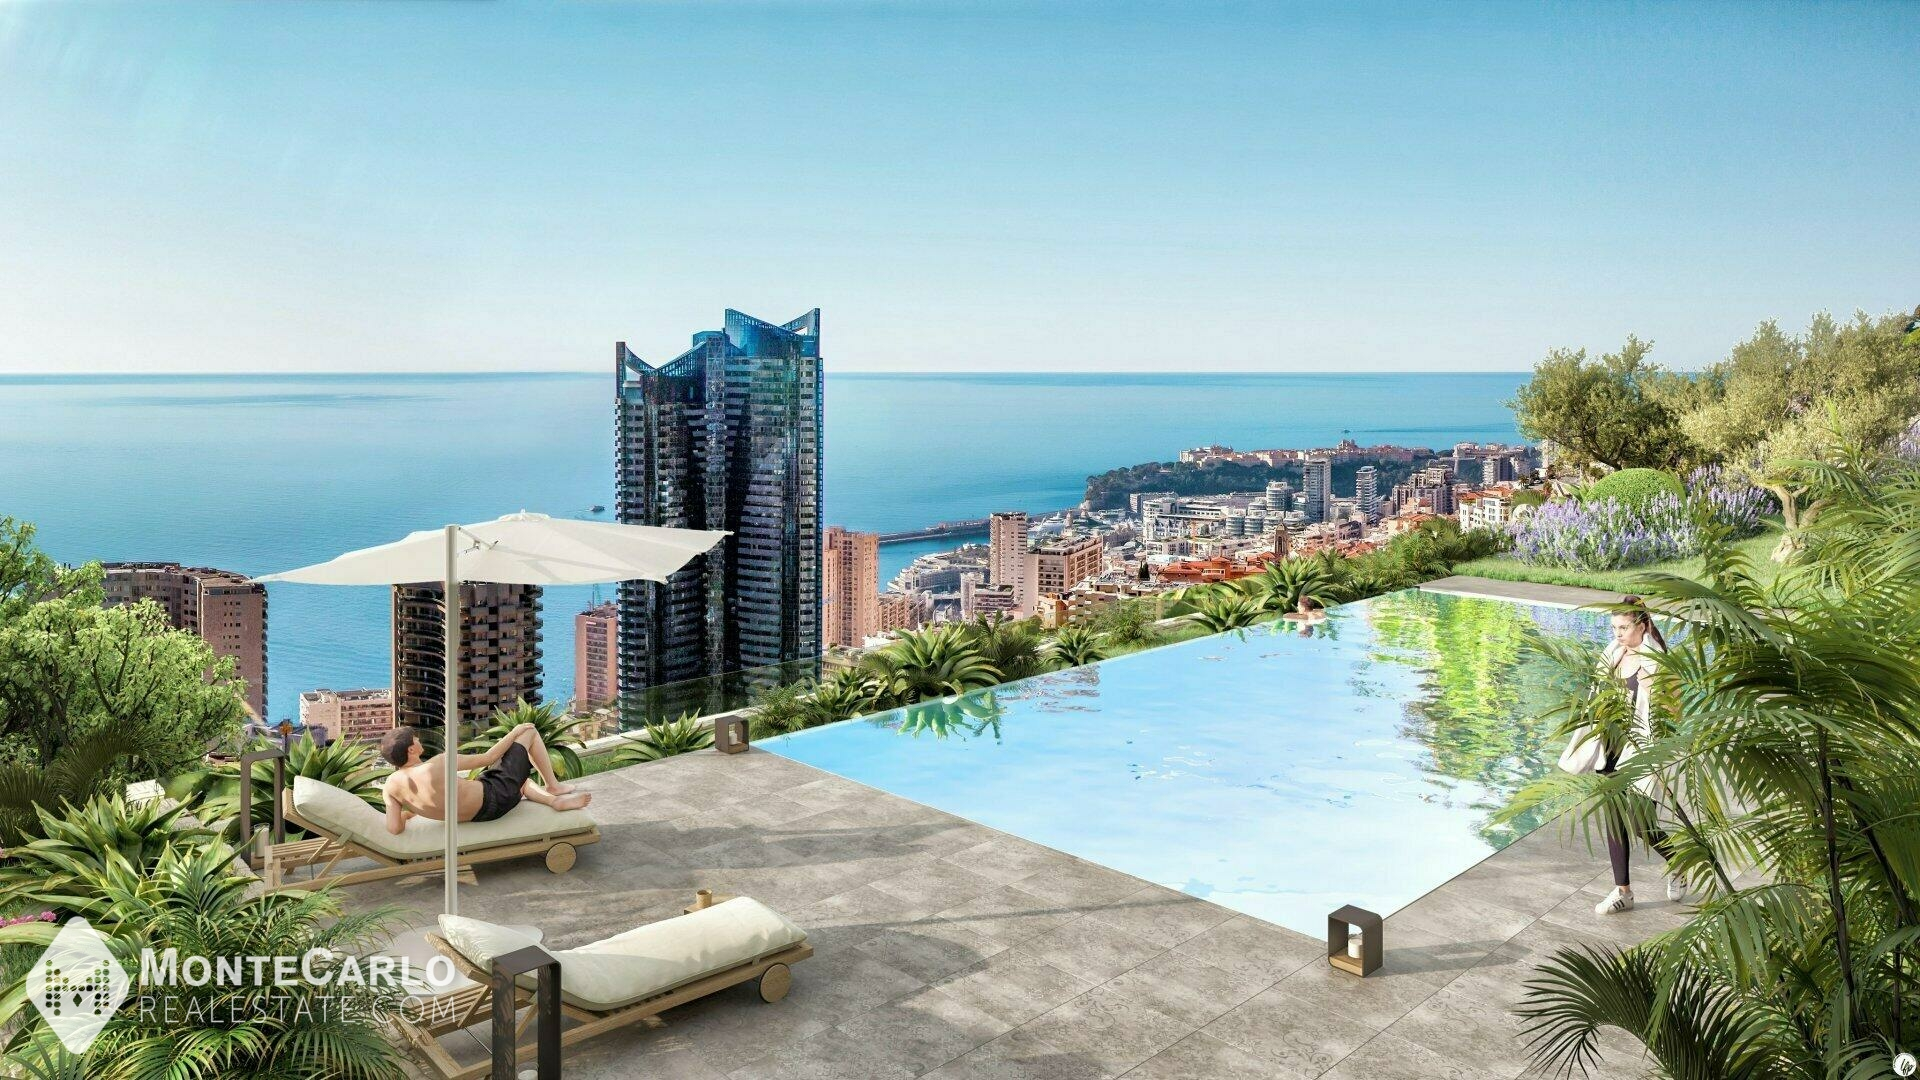 For sale Beausoleil - Apartment / 4 rooms : 1 900 000 € | Monte-Carlo Real Estate [SP-RB-5341857]